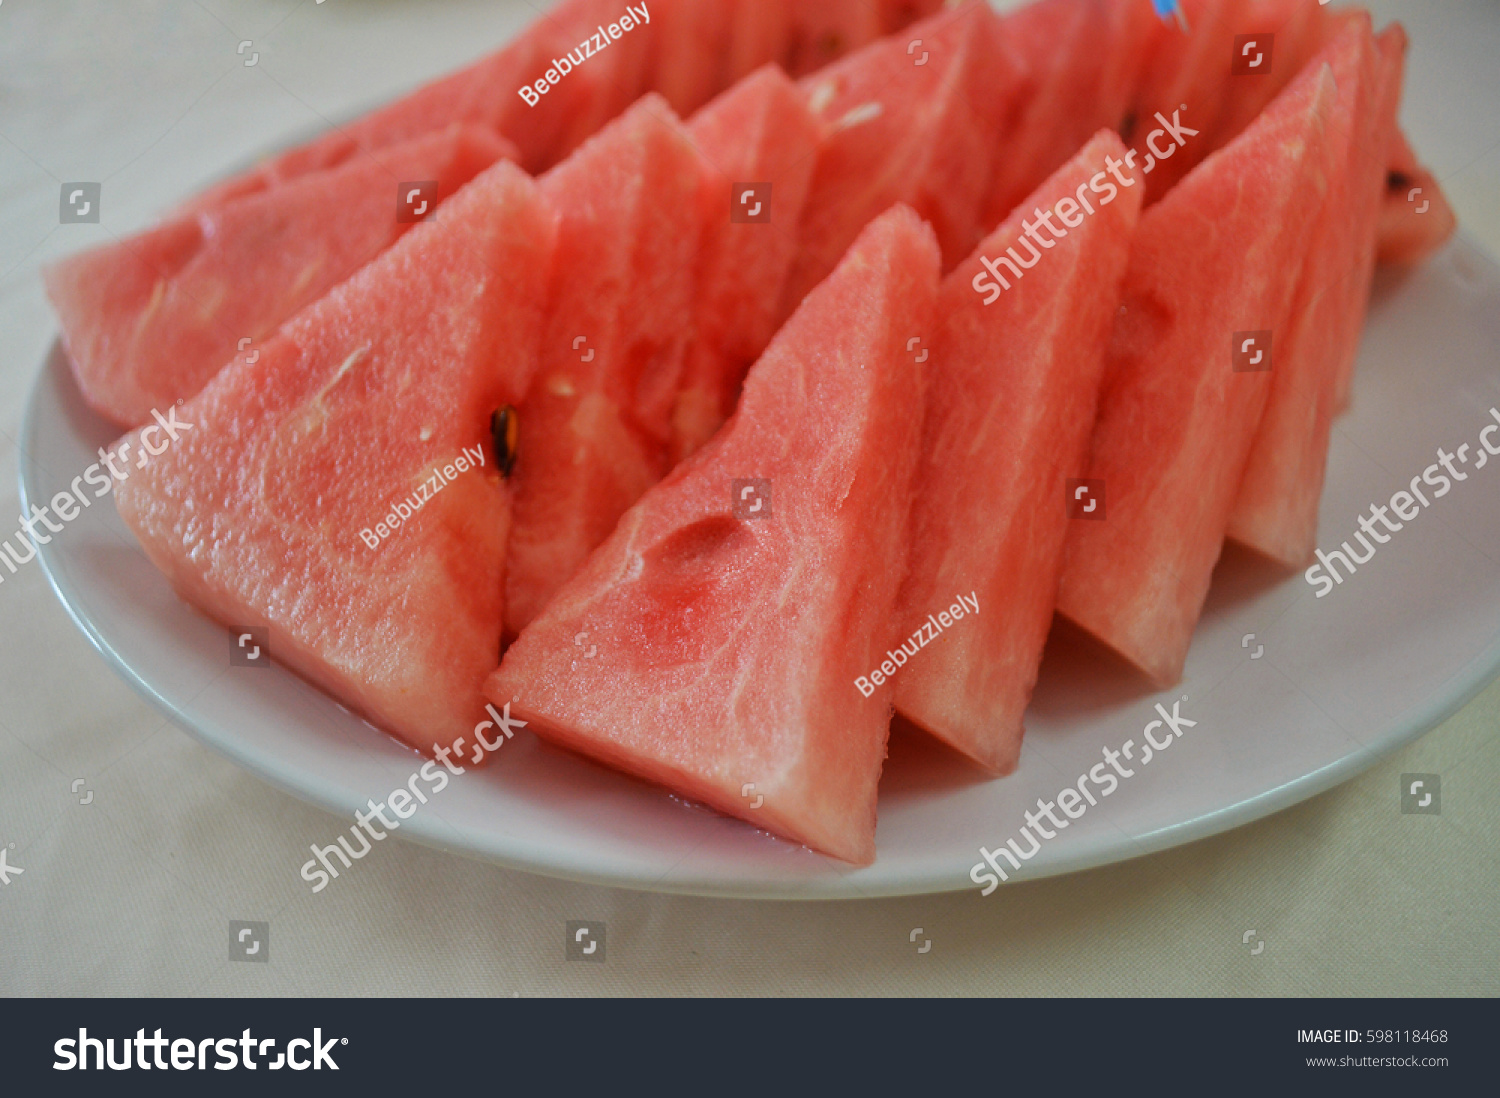 how to eat a watermelon neatly